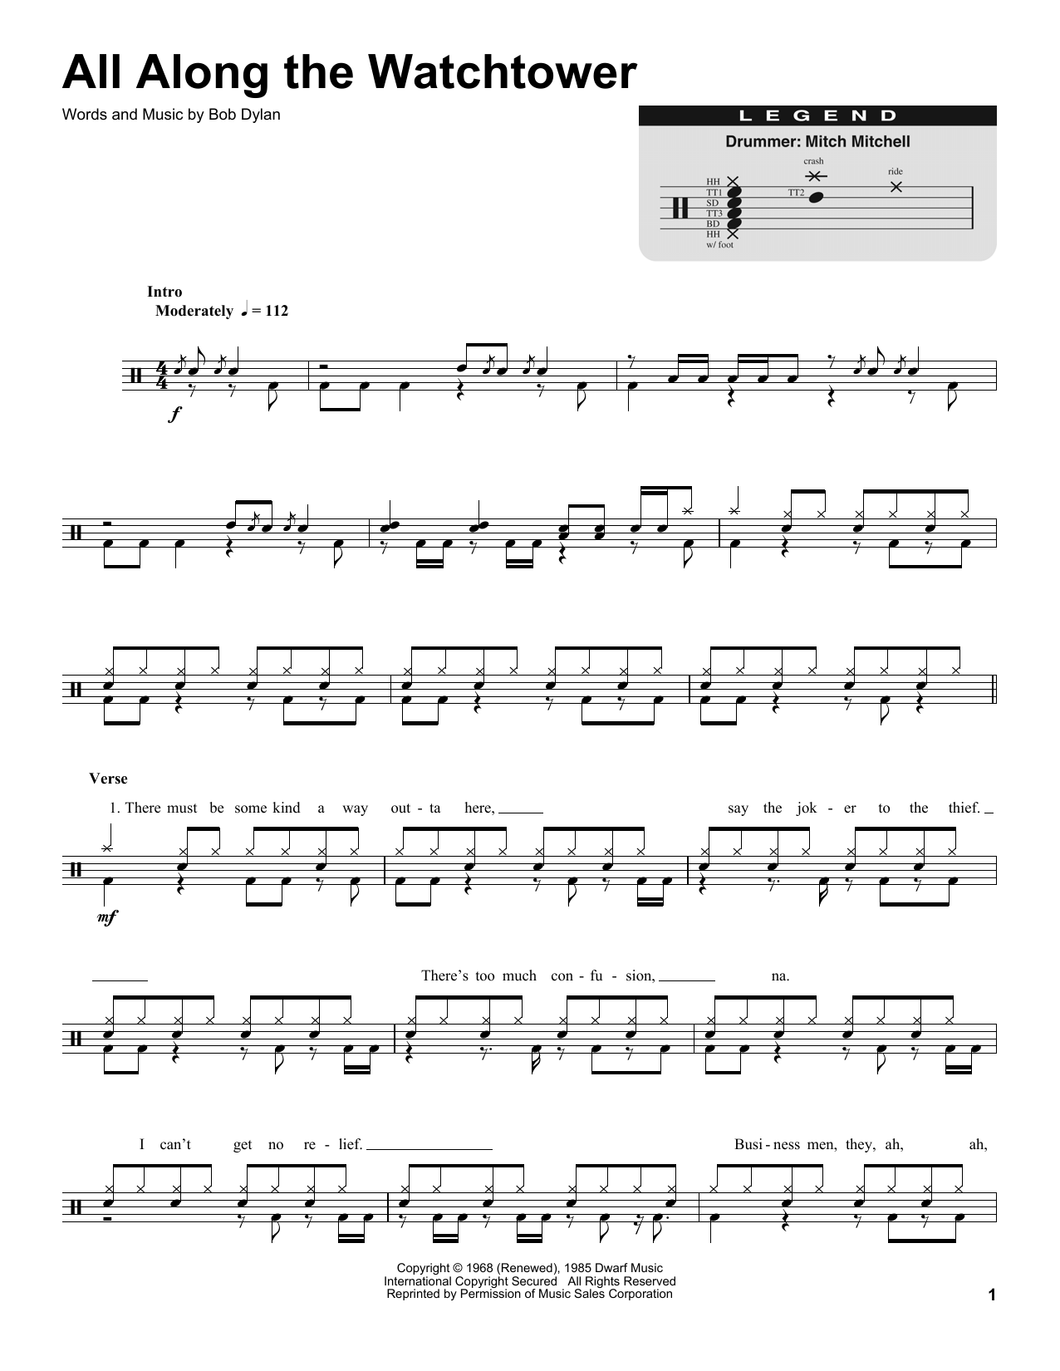 All Along The Watchtower - Jimi Hendrix - Full Drum Transcription / Drum Sheet Music - SheetMusicDirect DT